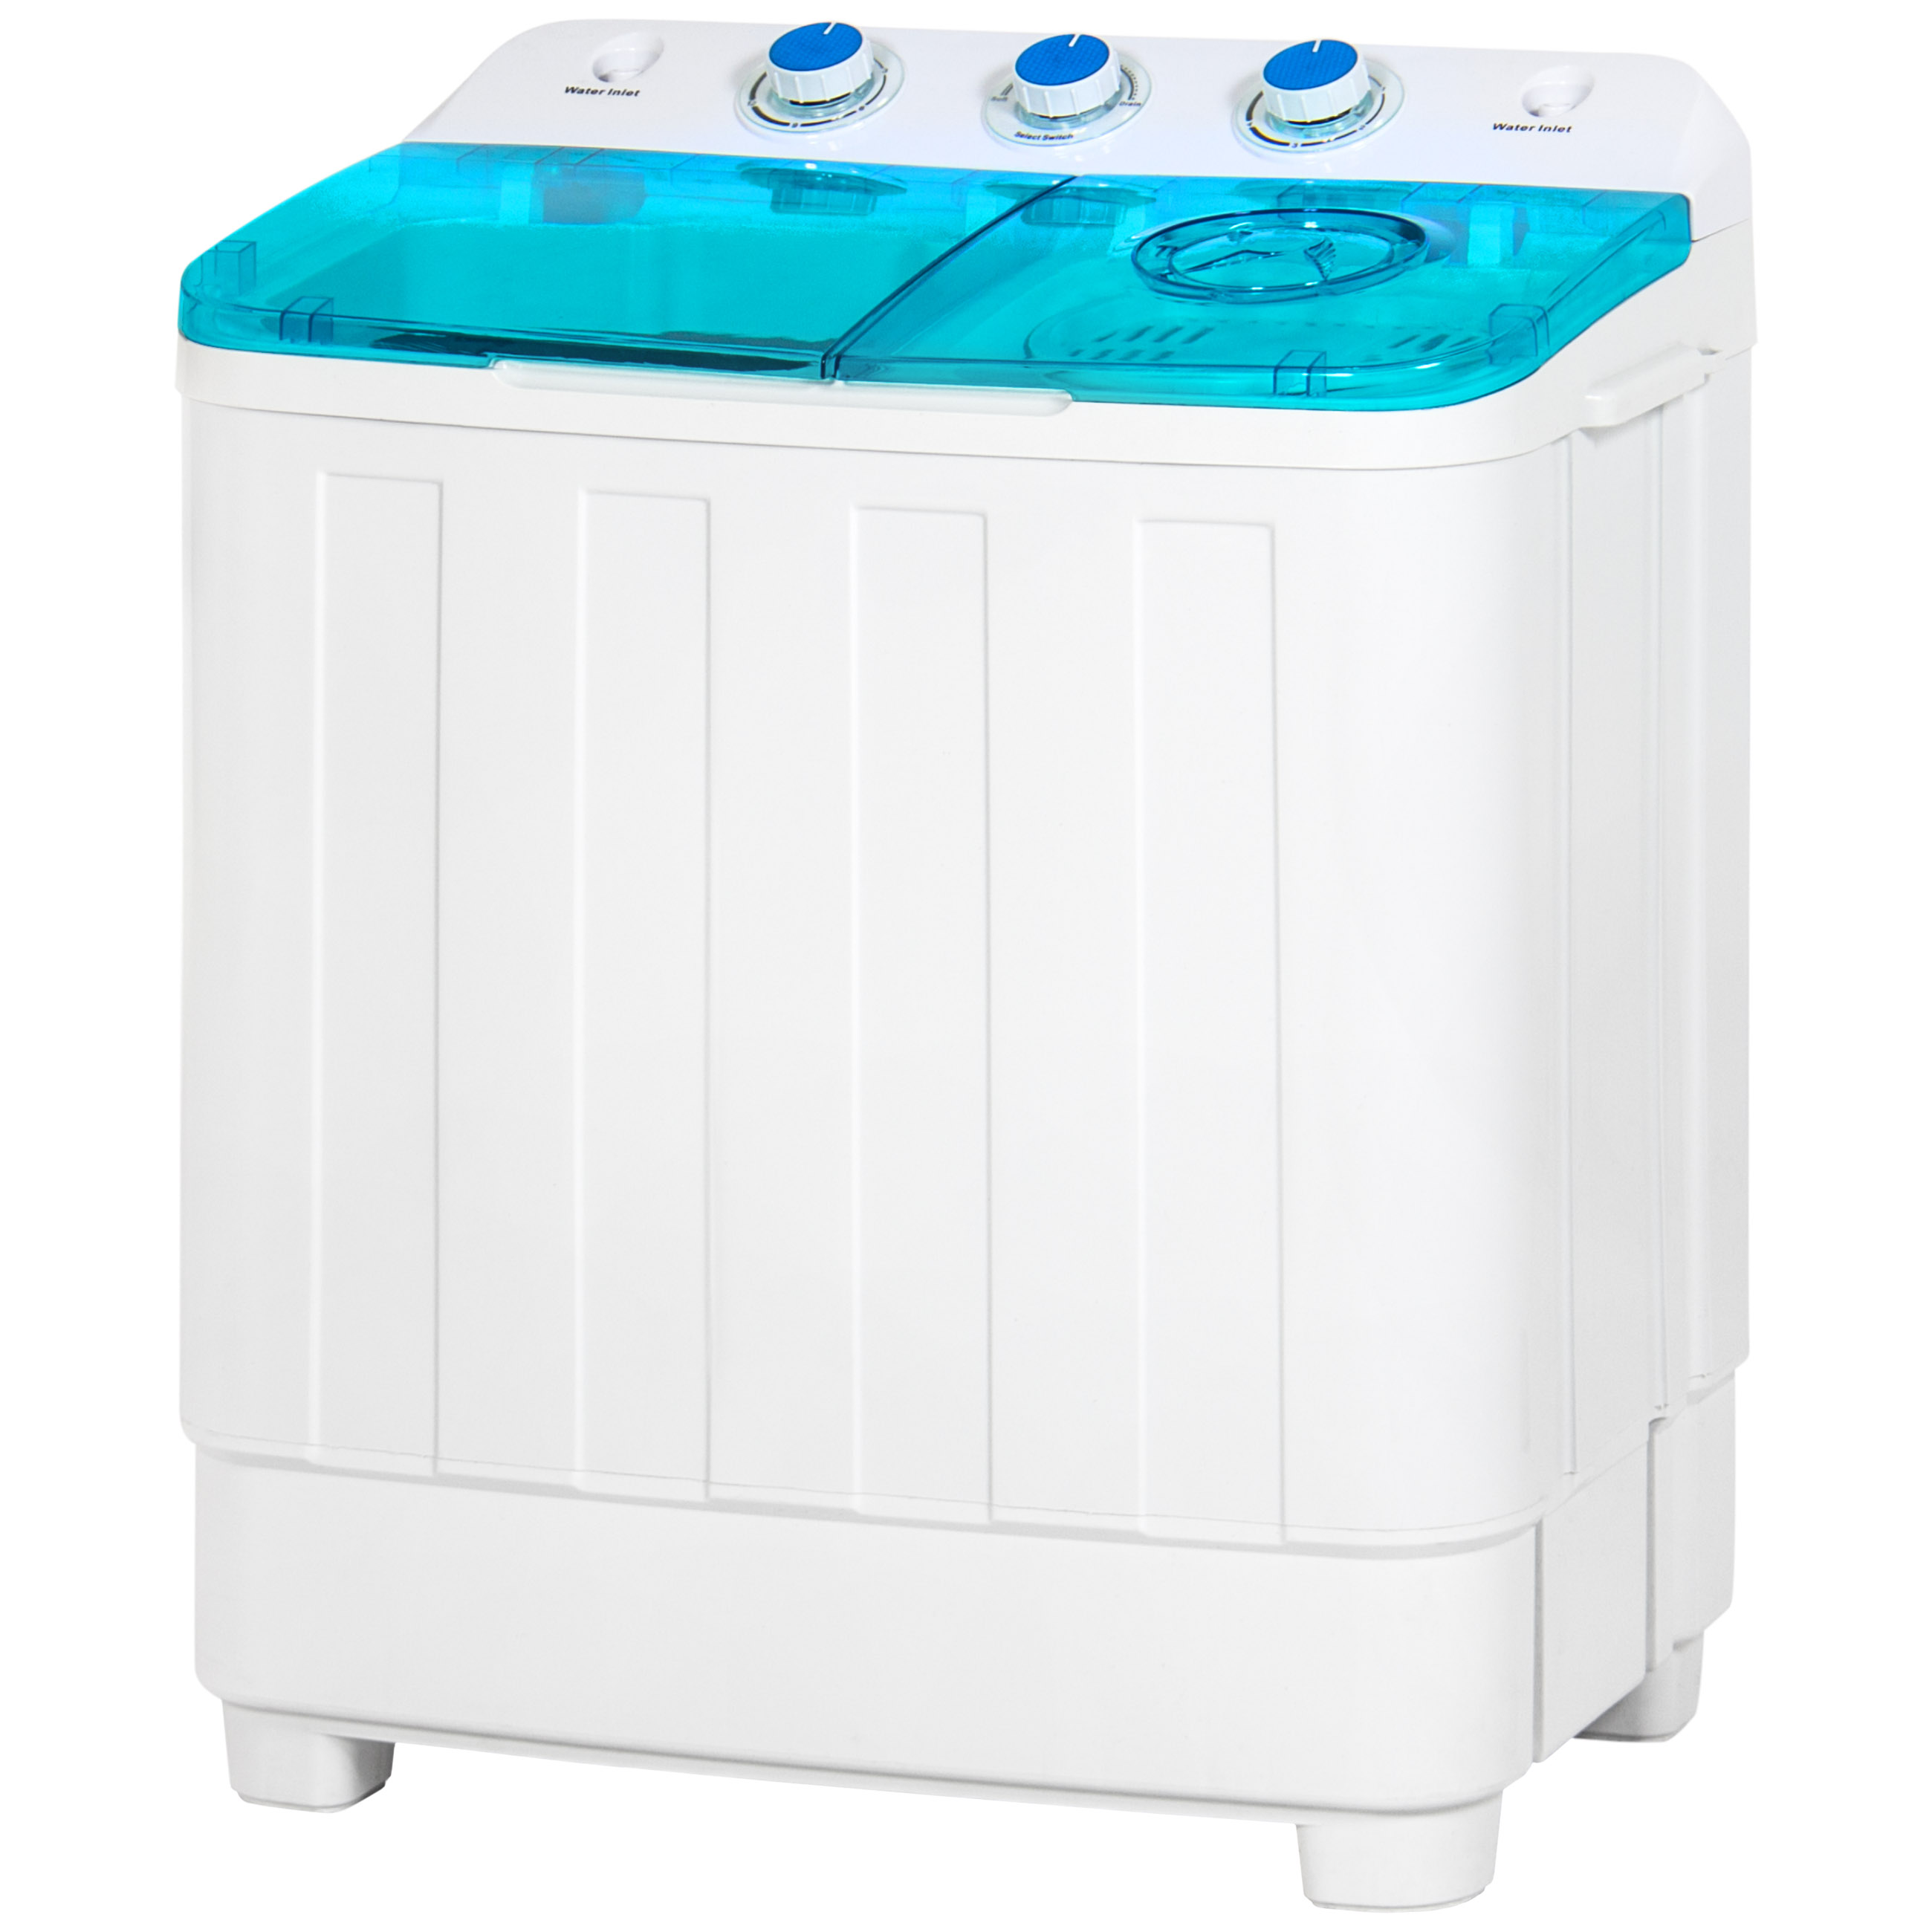 Best Washer For Cloth Diapers 2020 Best Choice Products 12 lbs Portable Washer Dryer Combo   Walmart.com